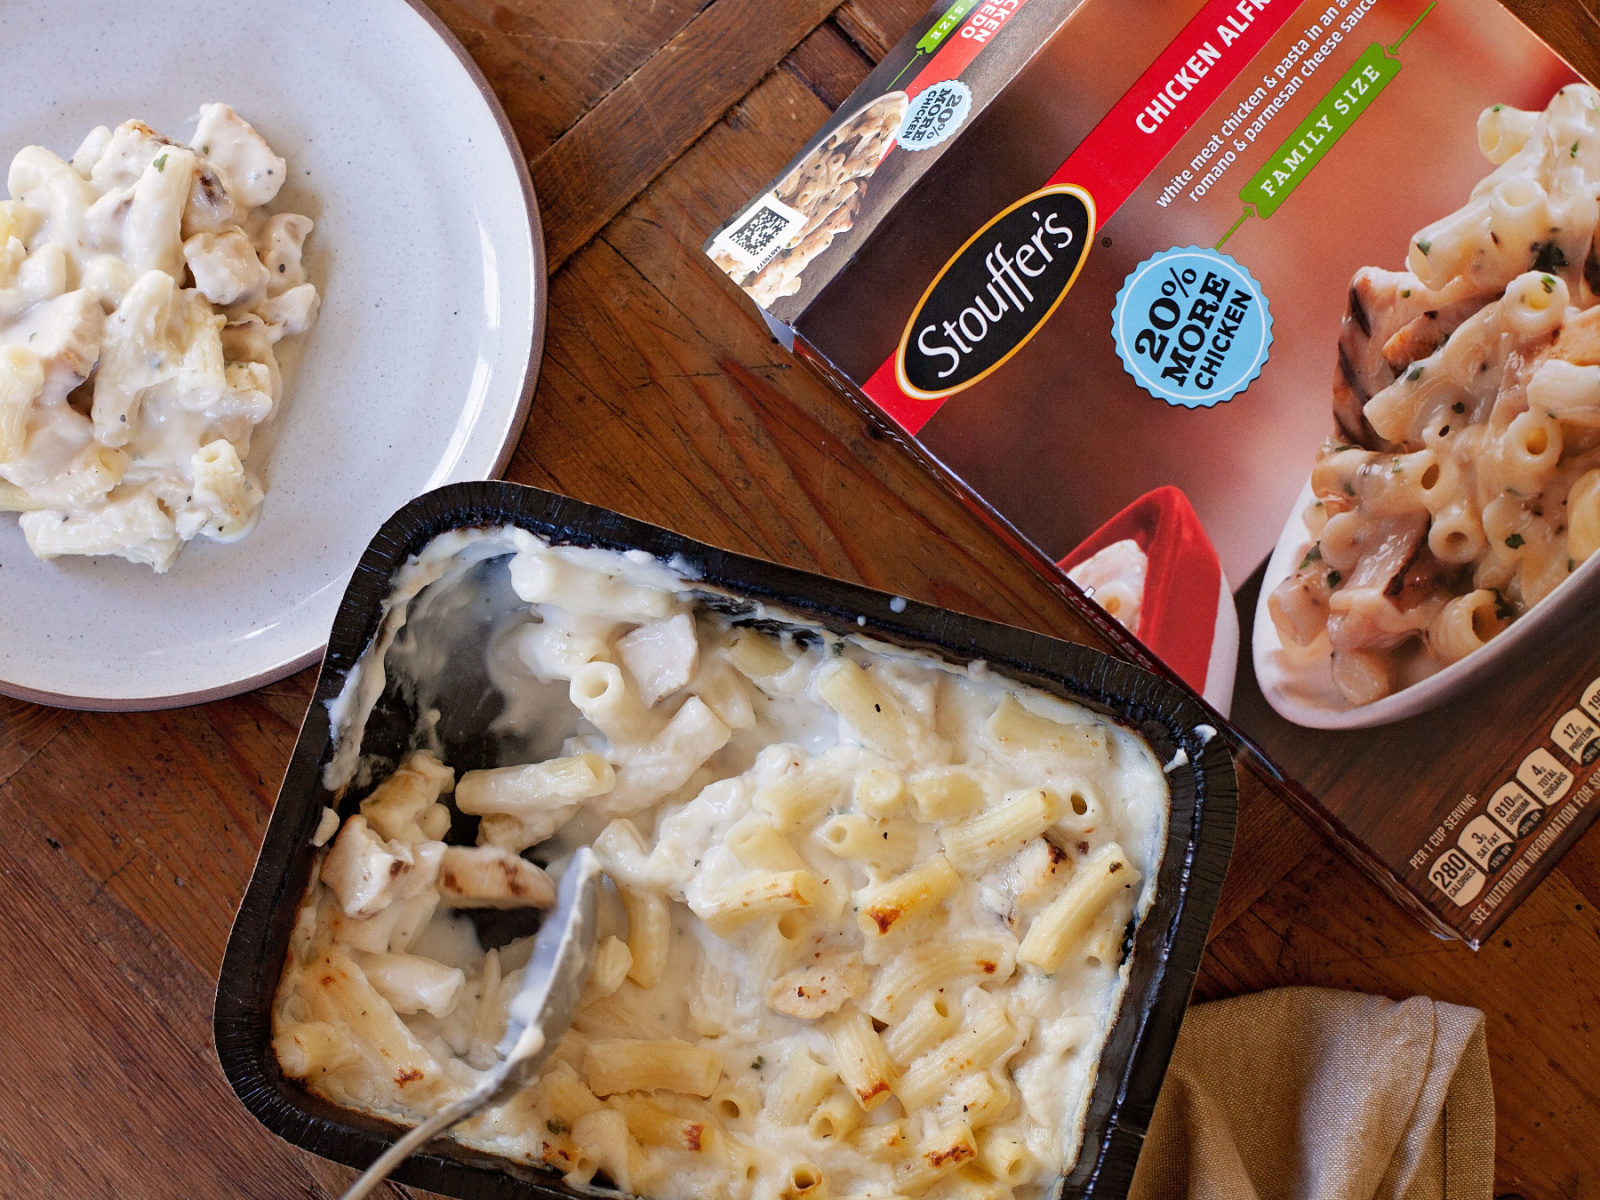 Stouffer's Family Size Entree Only $4.99 At Publix on I Heart Publix 2